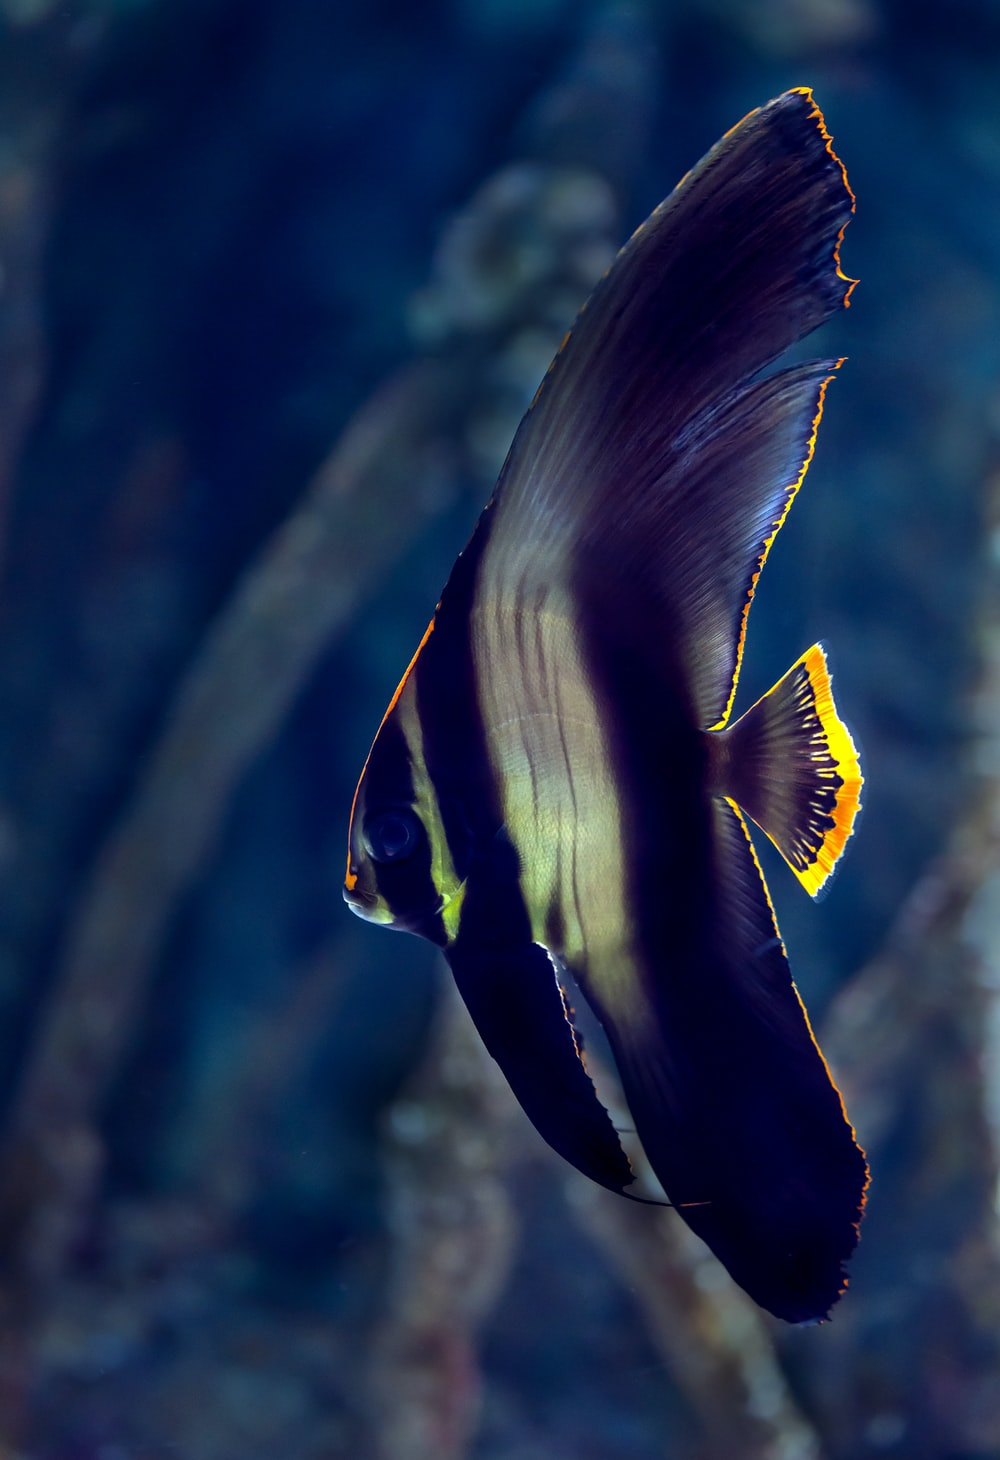 black and white fish in close up photography